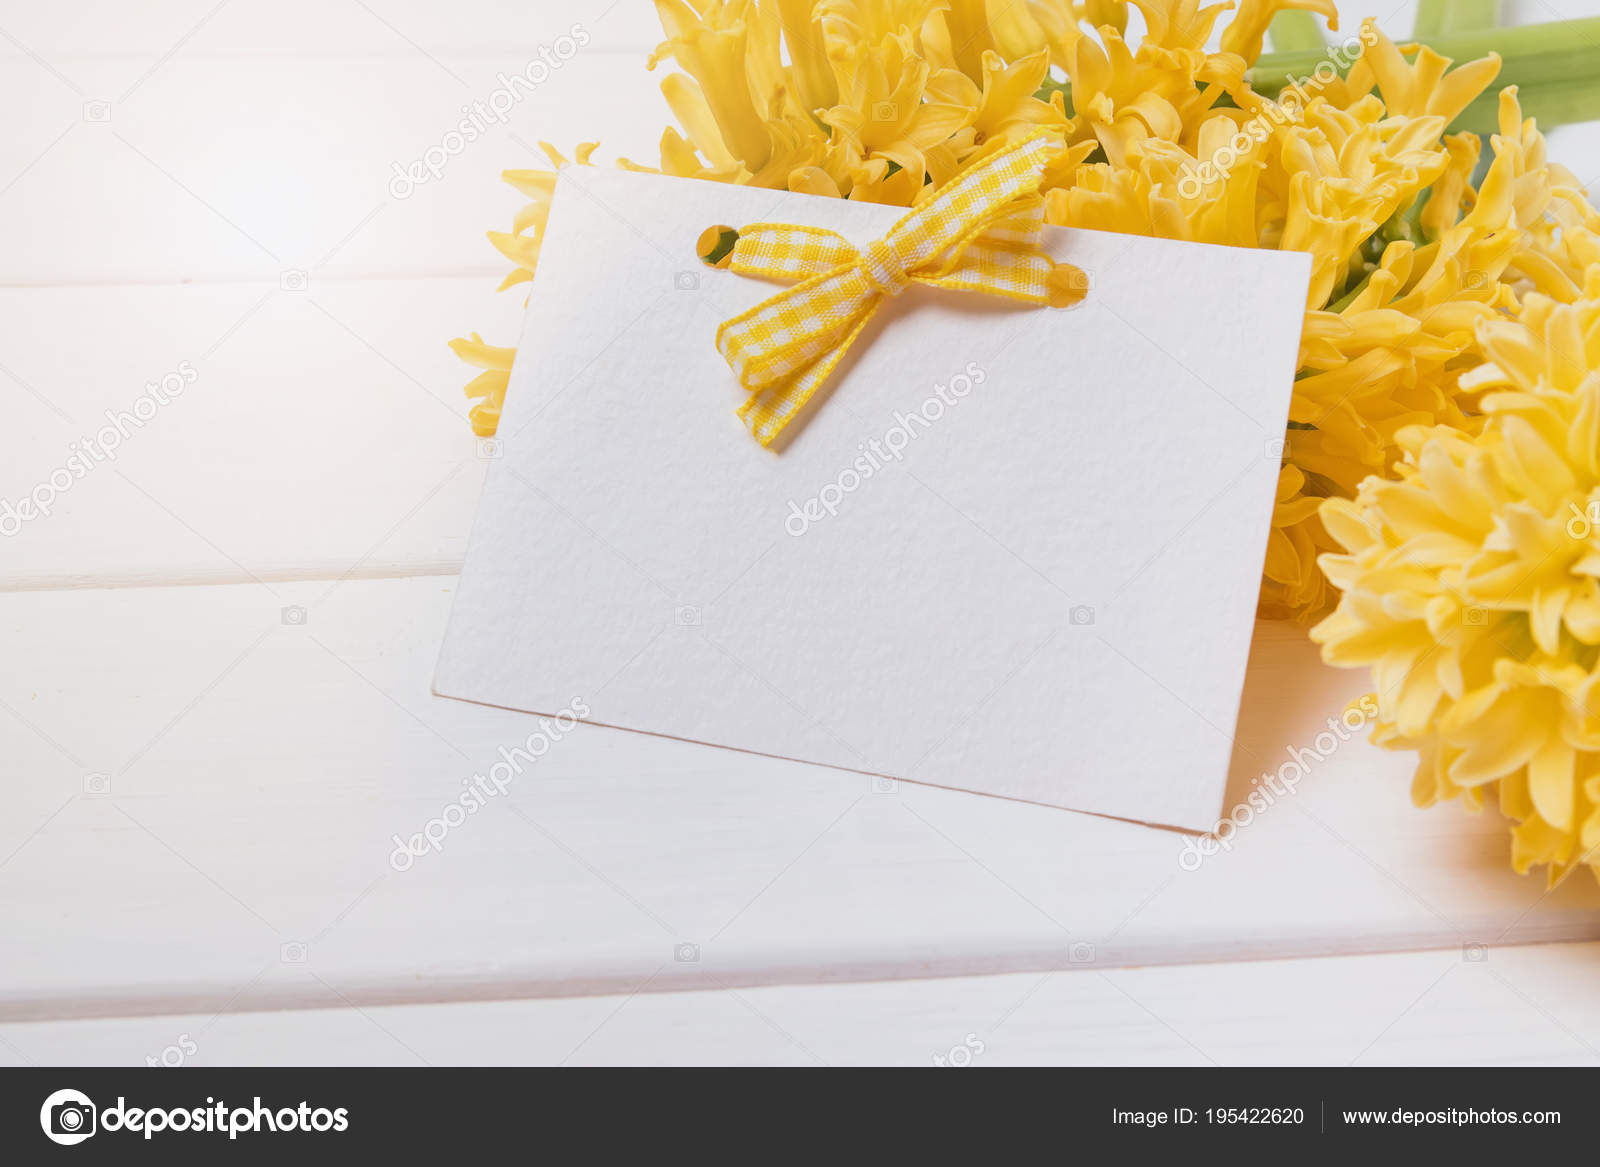 Blank Greeting Card Template On The Yellow Hyacinth Flowers Stock